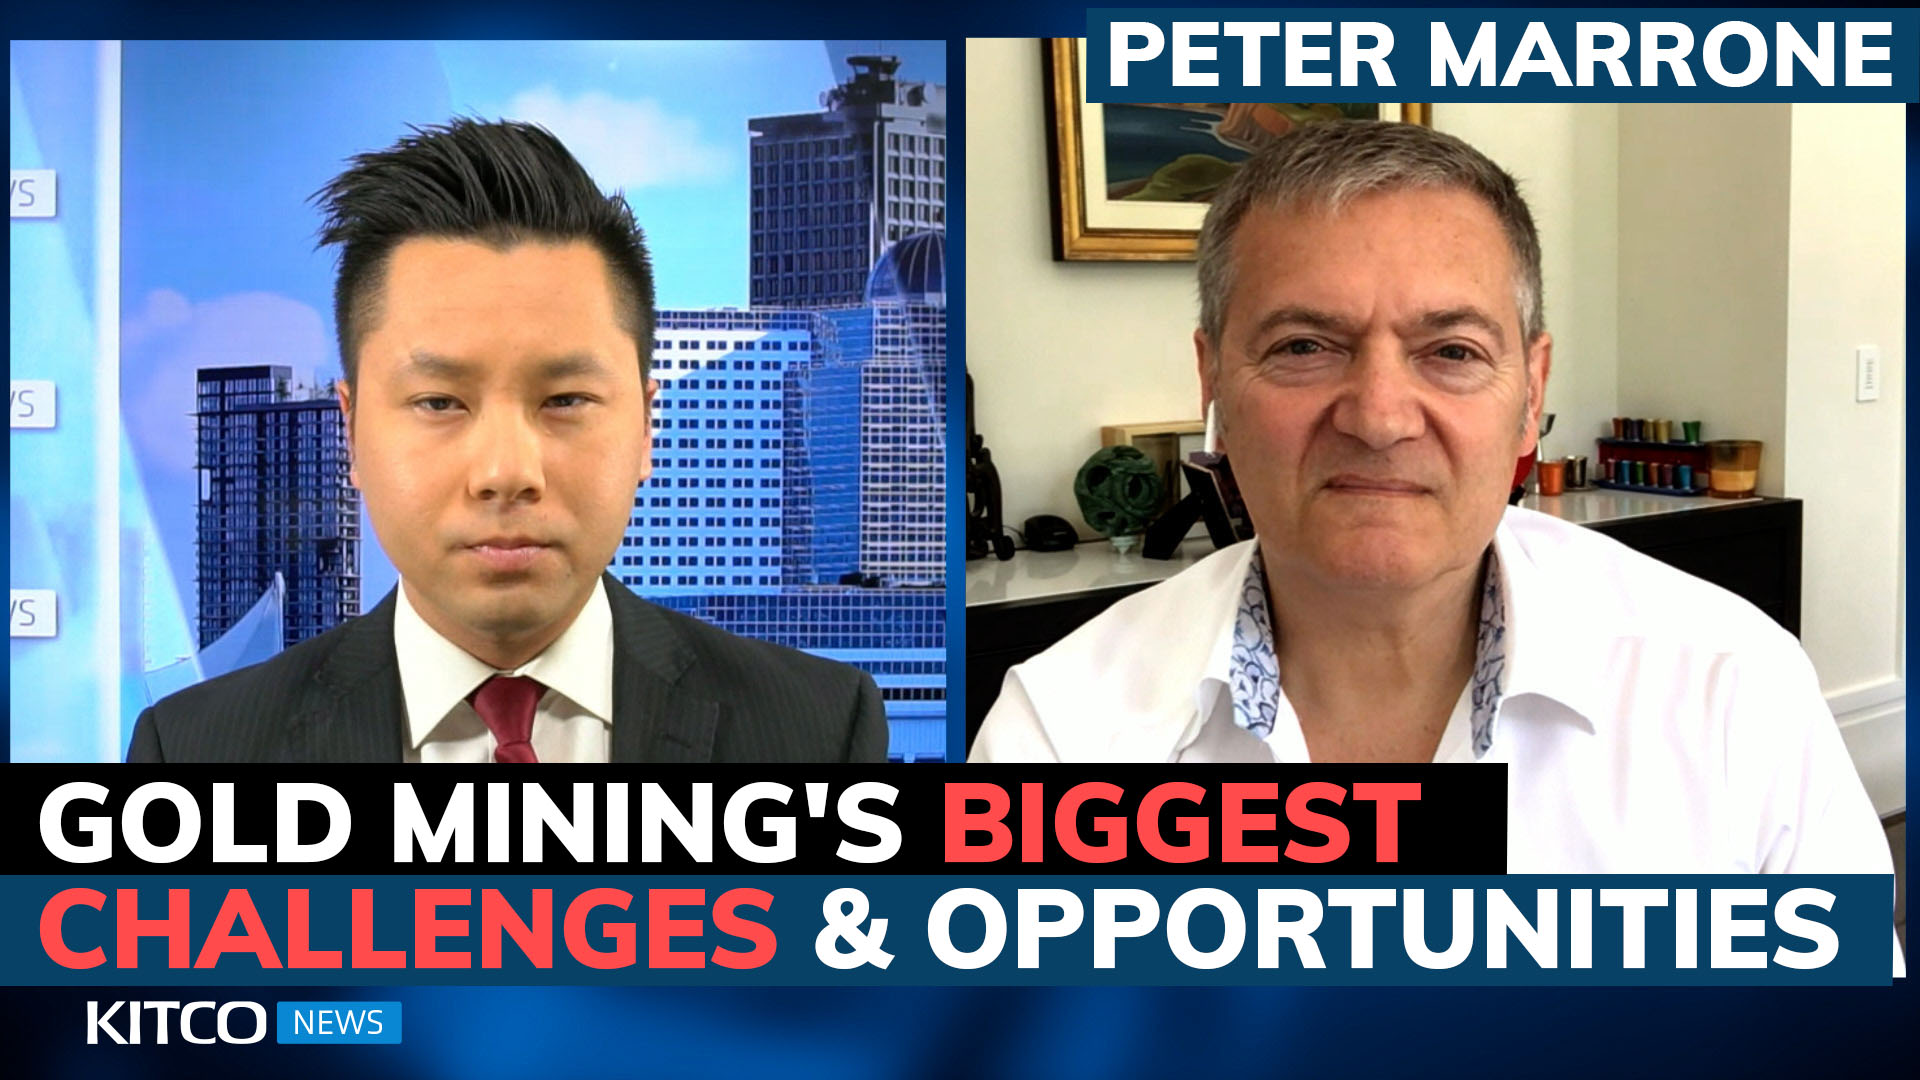 Are gold stocks set for explosive growth like last summer? Yamana exec Peter Marrone on challenges, opportunities